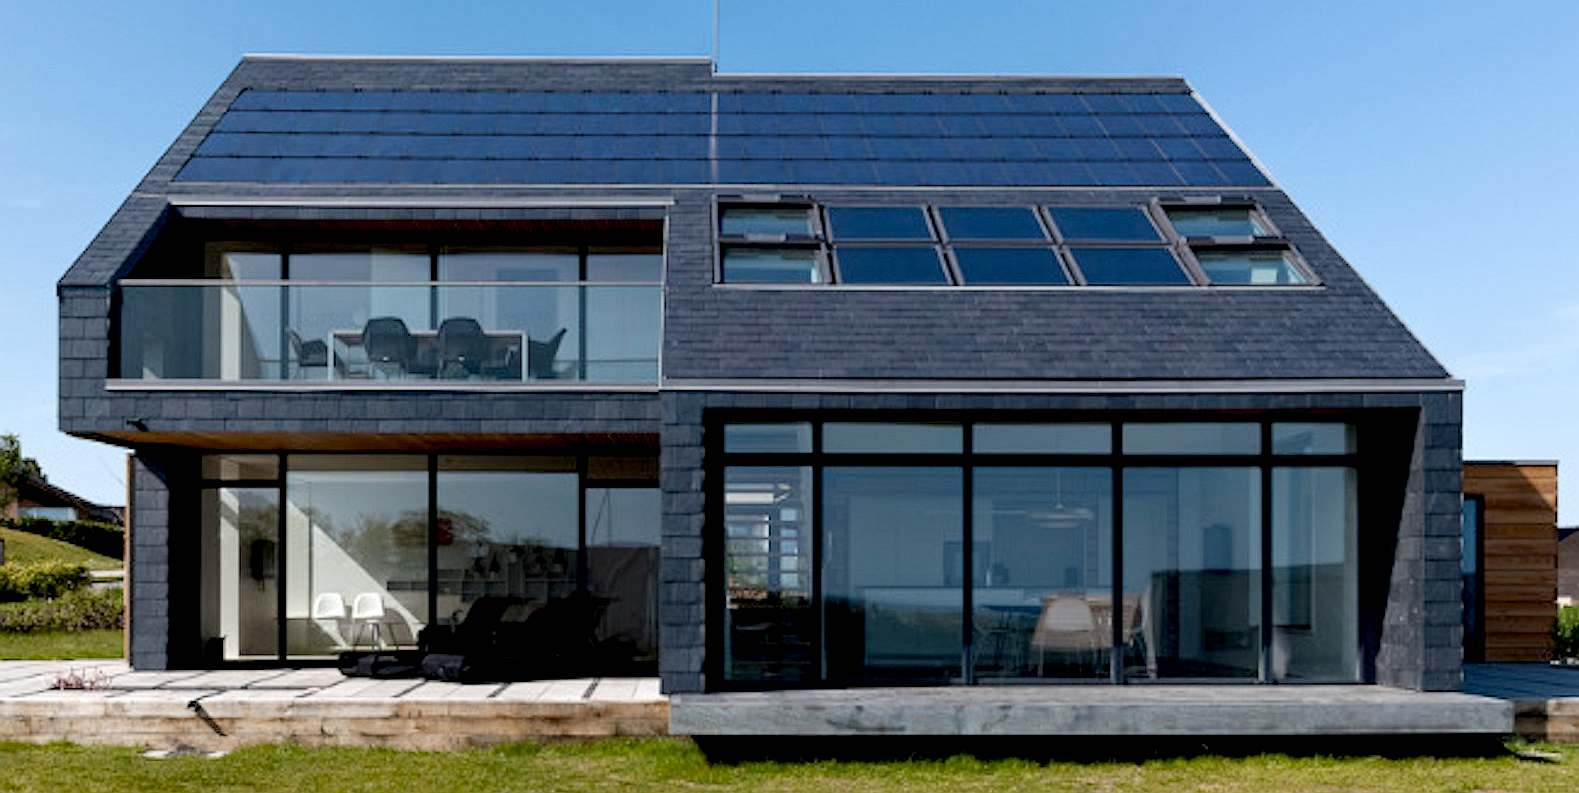 Home for life solar heating and pv panels